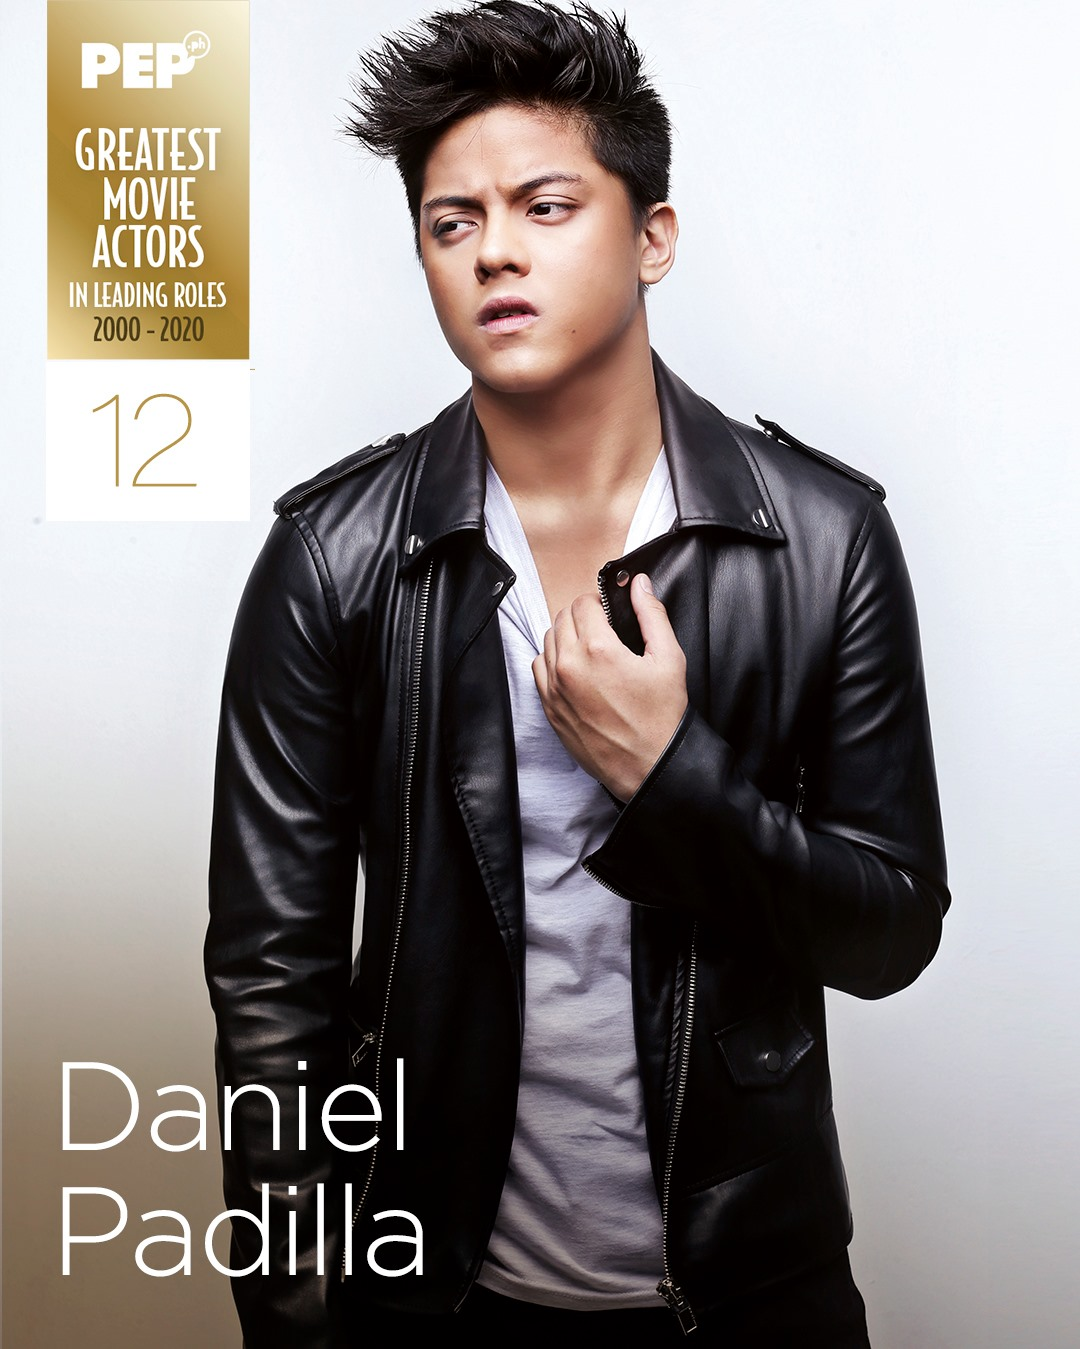 Daniel Padilla, 15 Greatest Movie Actors in Leading Roles